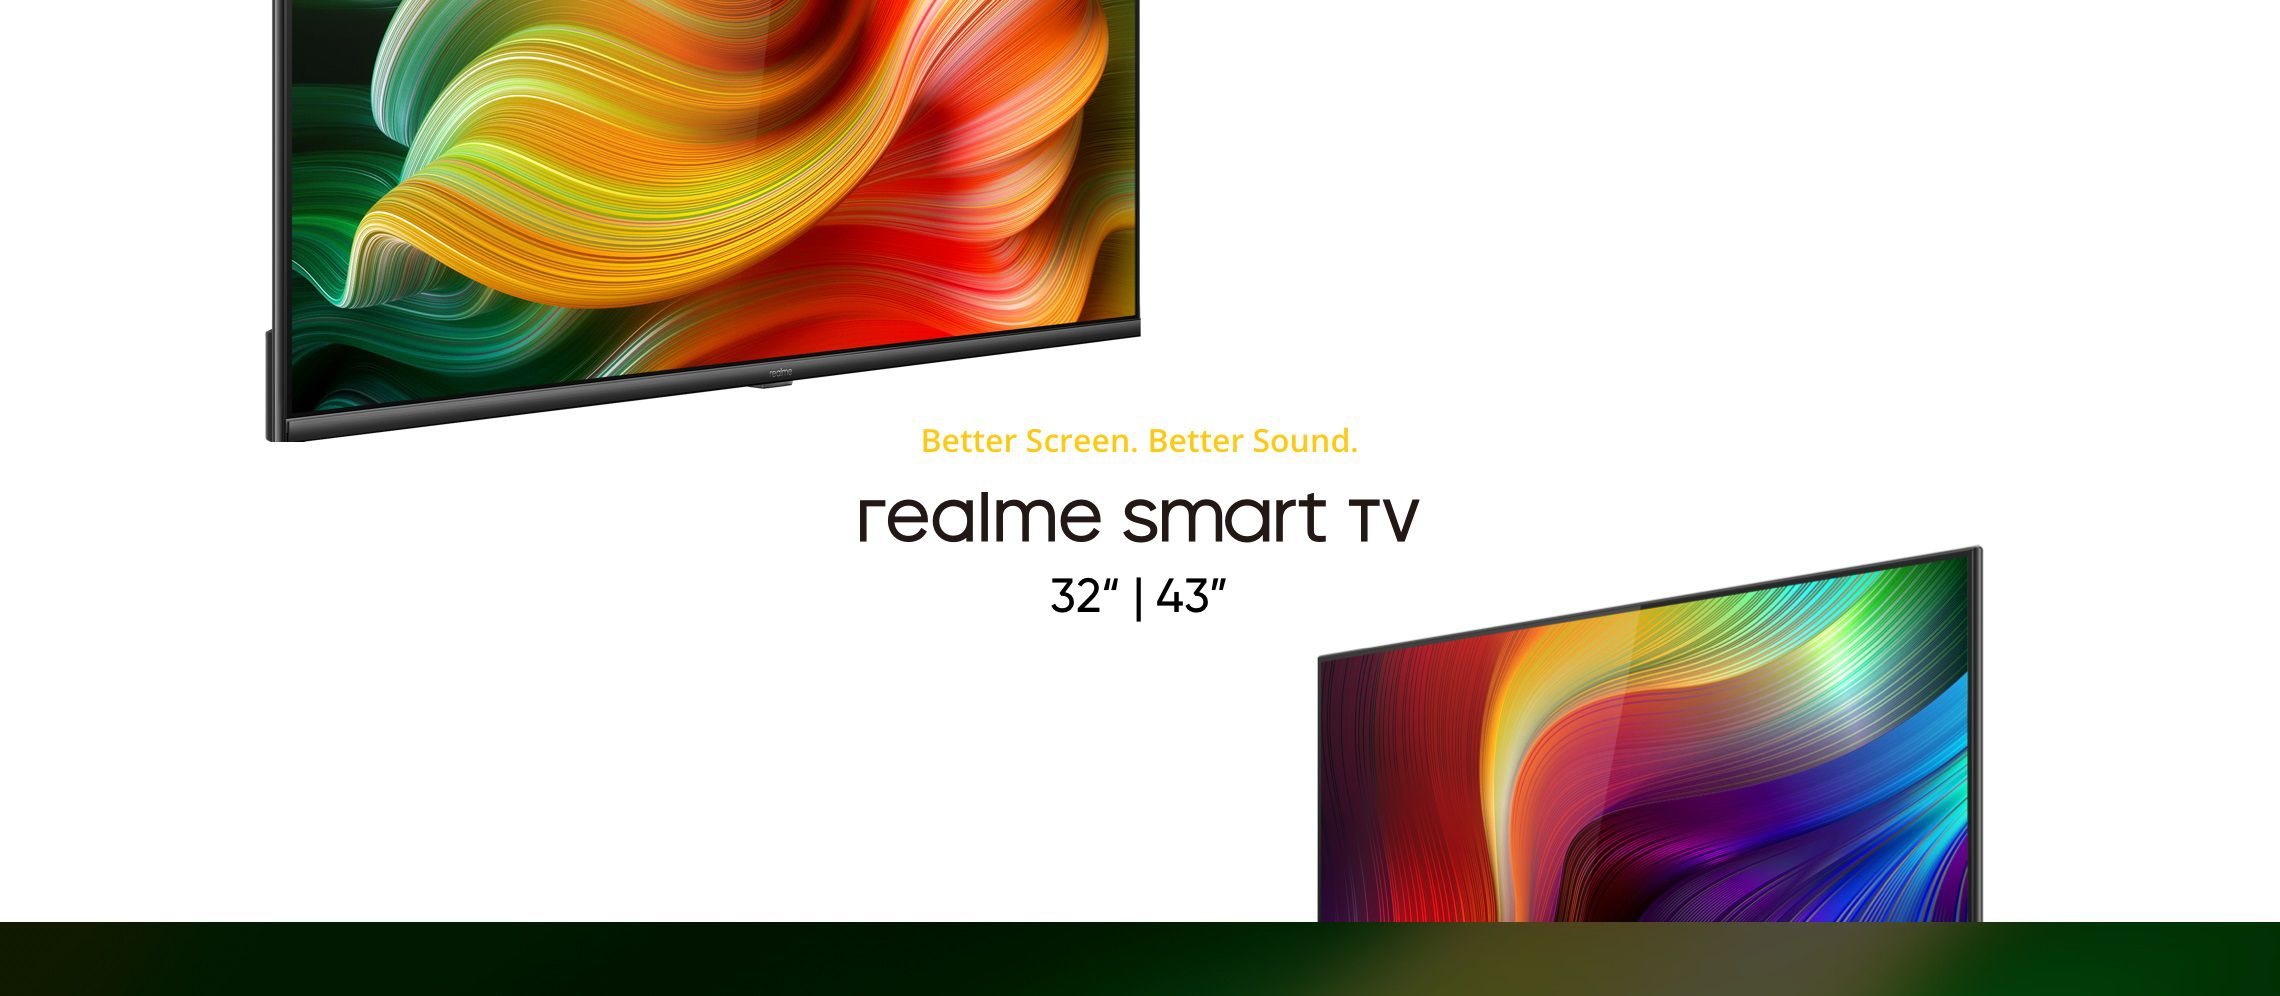 Realme Smart TV presentante ufficialmente: le prime (ed interessanti) smart TV di Realme